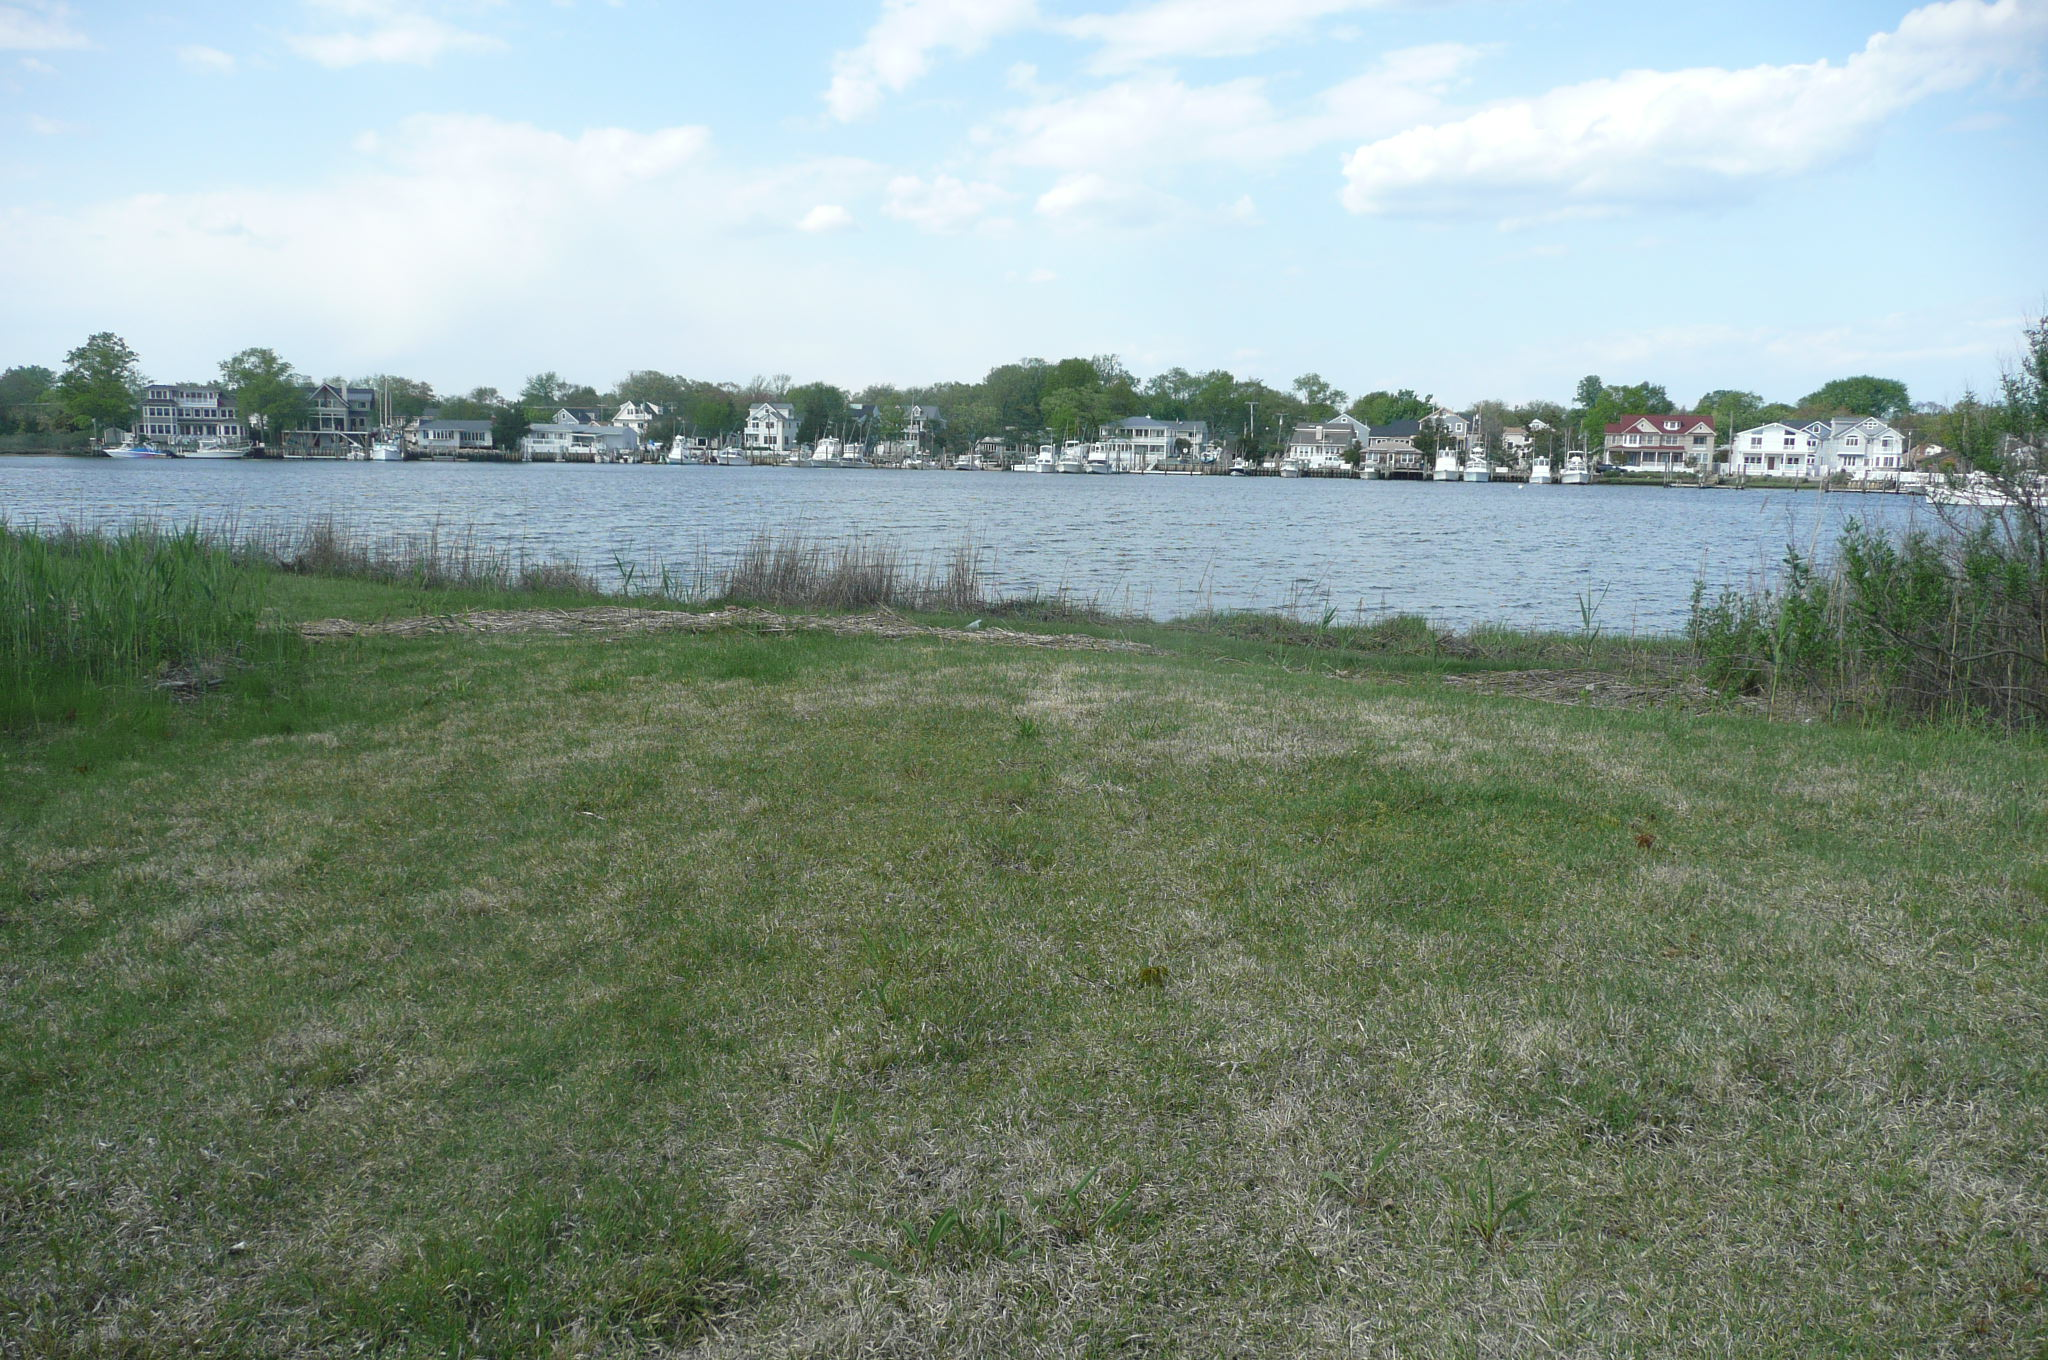 Land for Sale at Waterfront Lot in Brielle 331 Magnolia Avenue Brielle, New Jersey 08730 United States